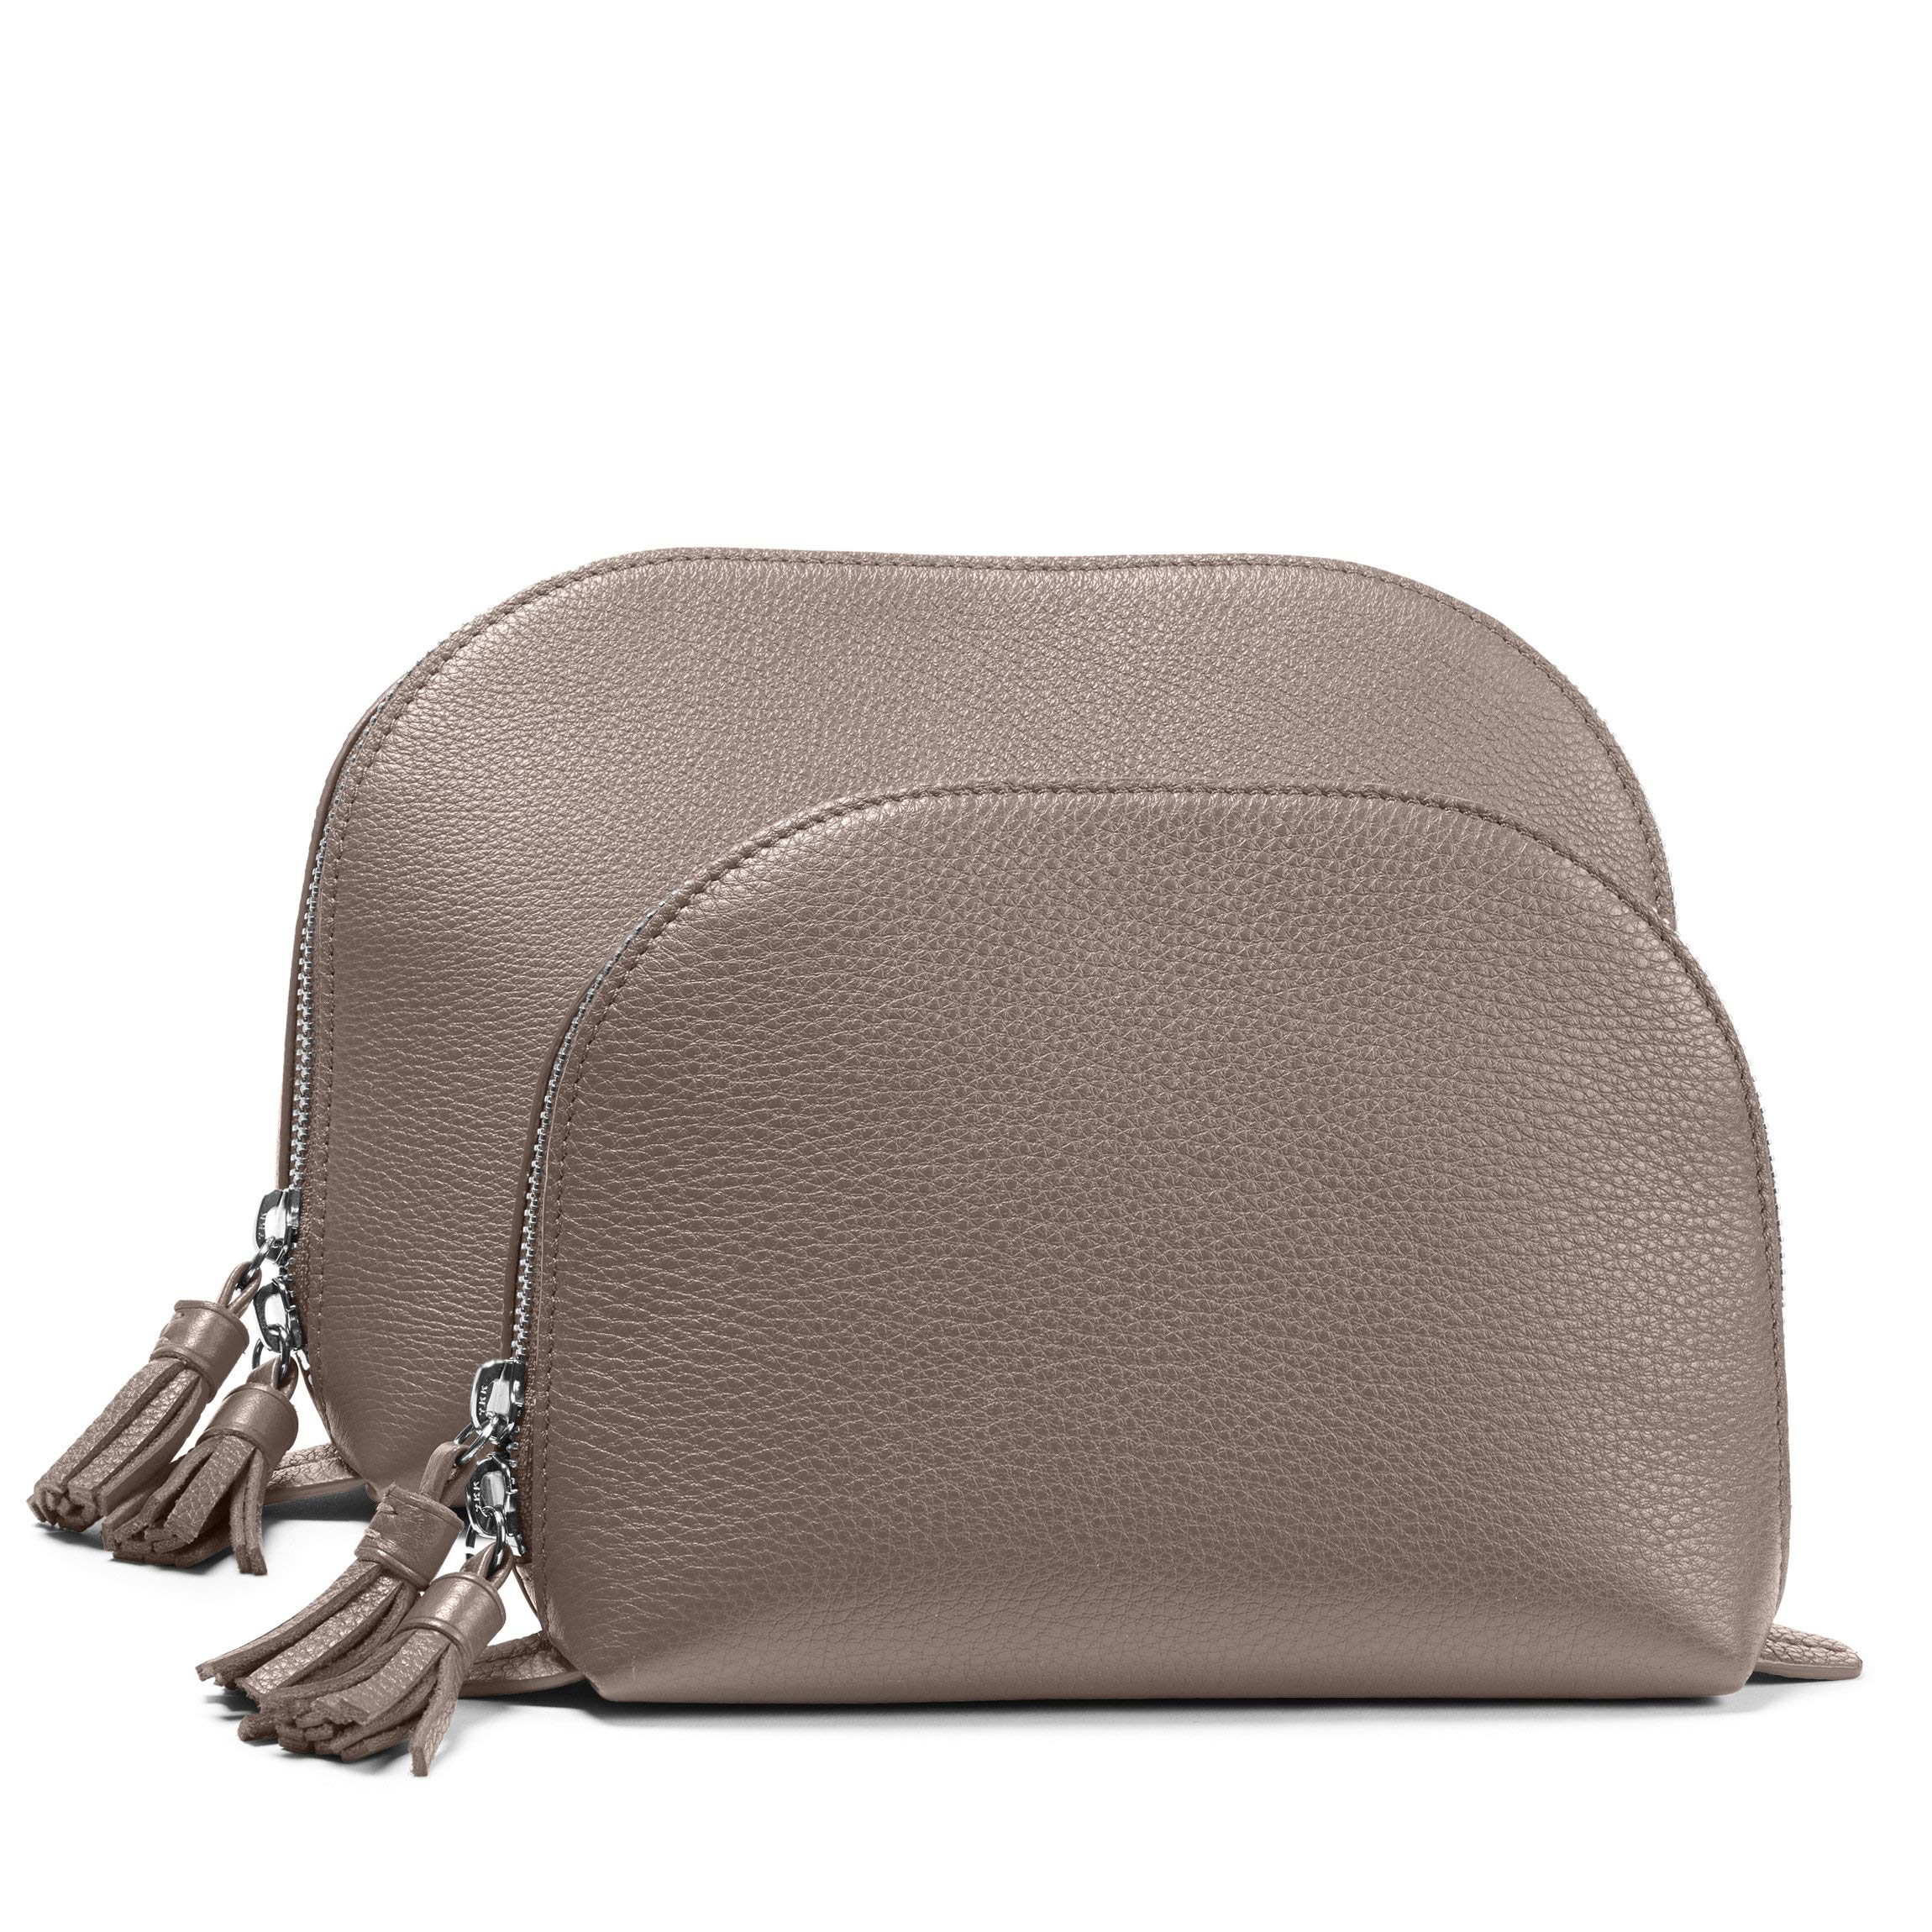 Clamshell Makeup Bag Set - Full Grain Leather Leather - Taupe (Beige) by Leatherology (Image #1)